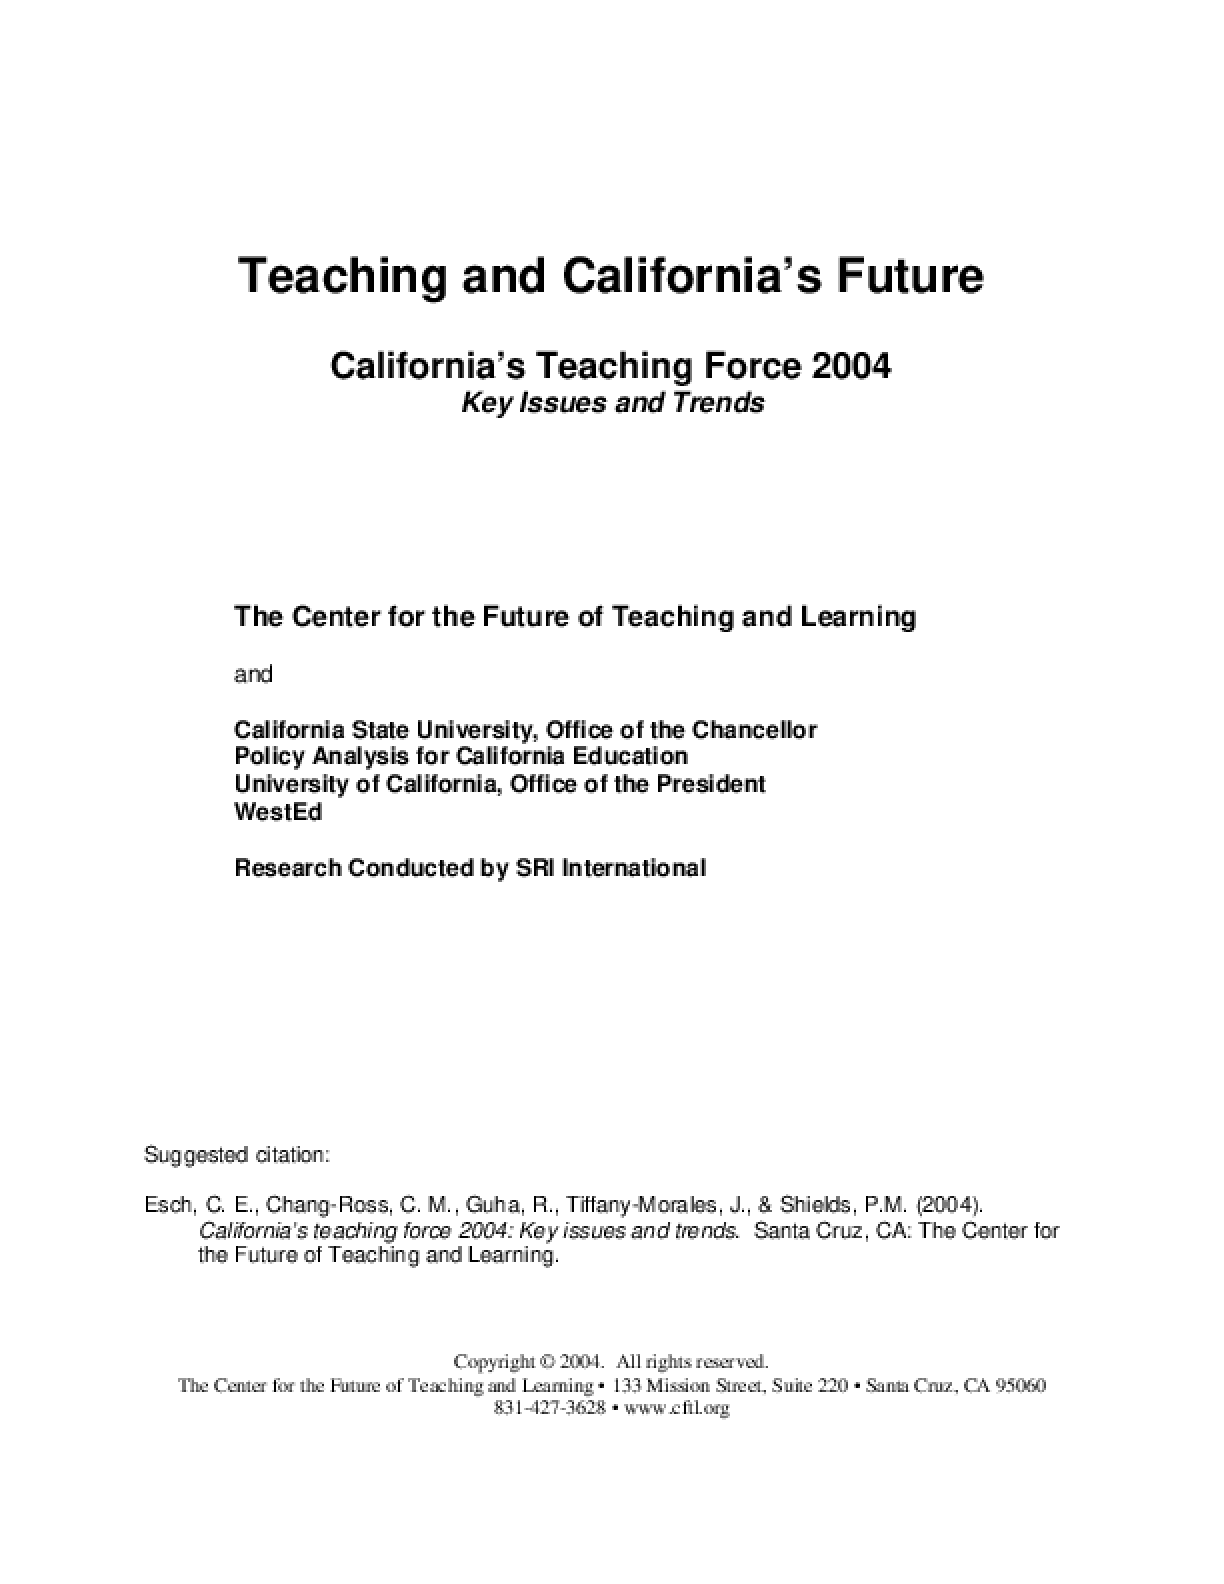 California's Teaching Force 2004: Key Issues and Trends (Report)